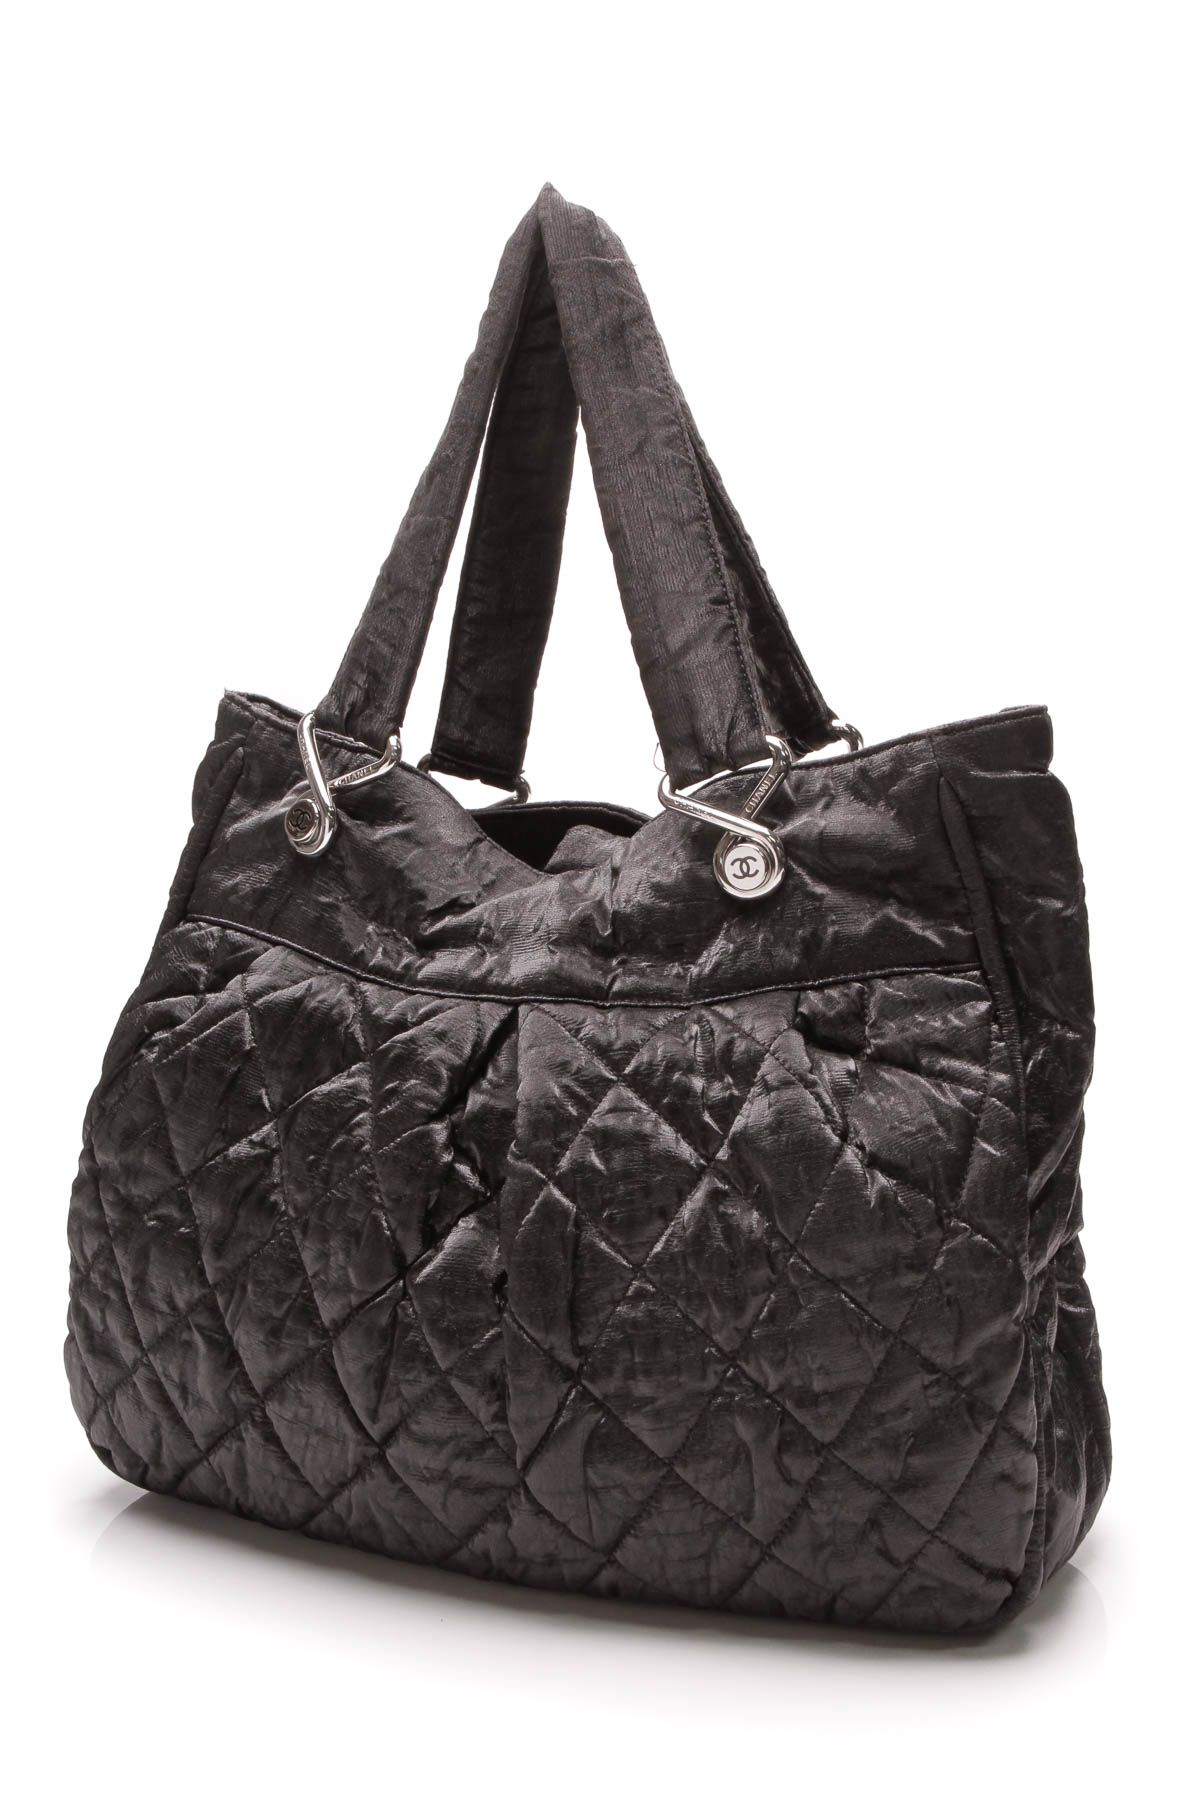 Chanel Le Marais Ligne Tote Bag Black